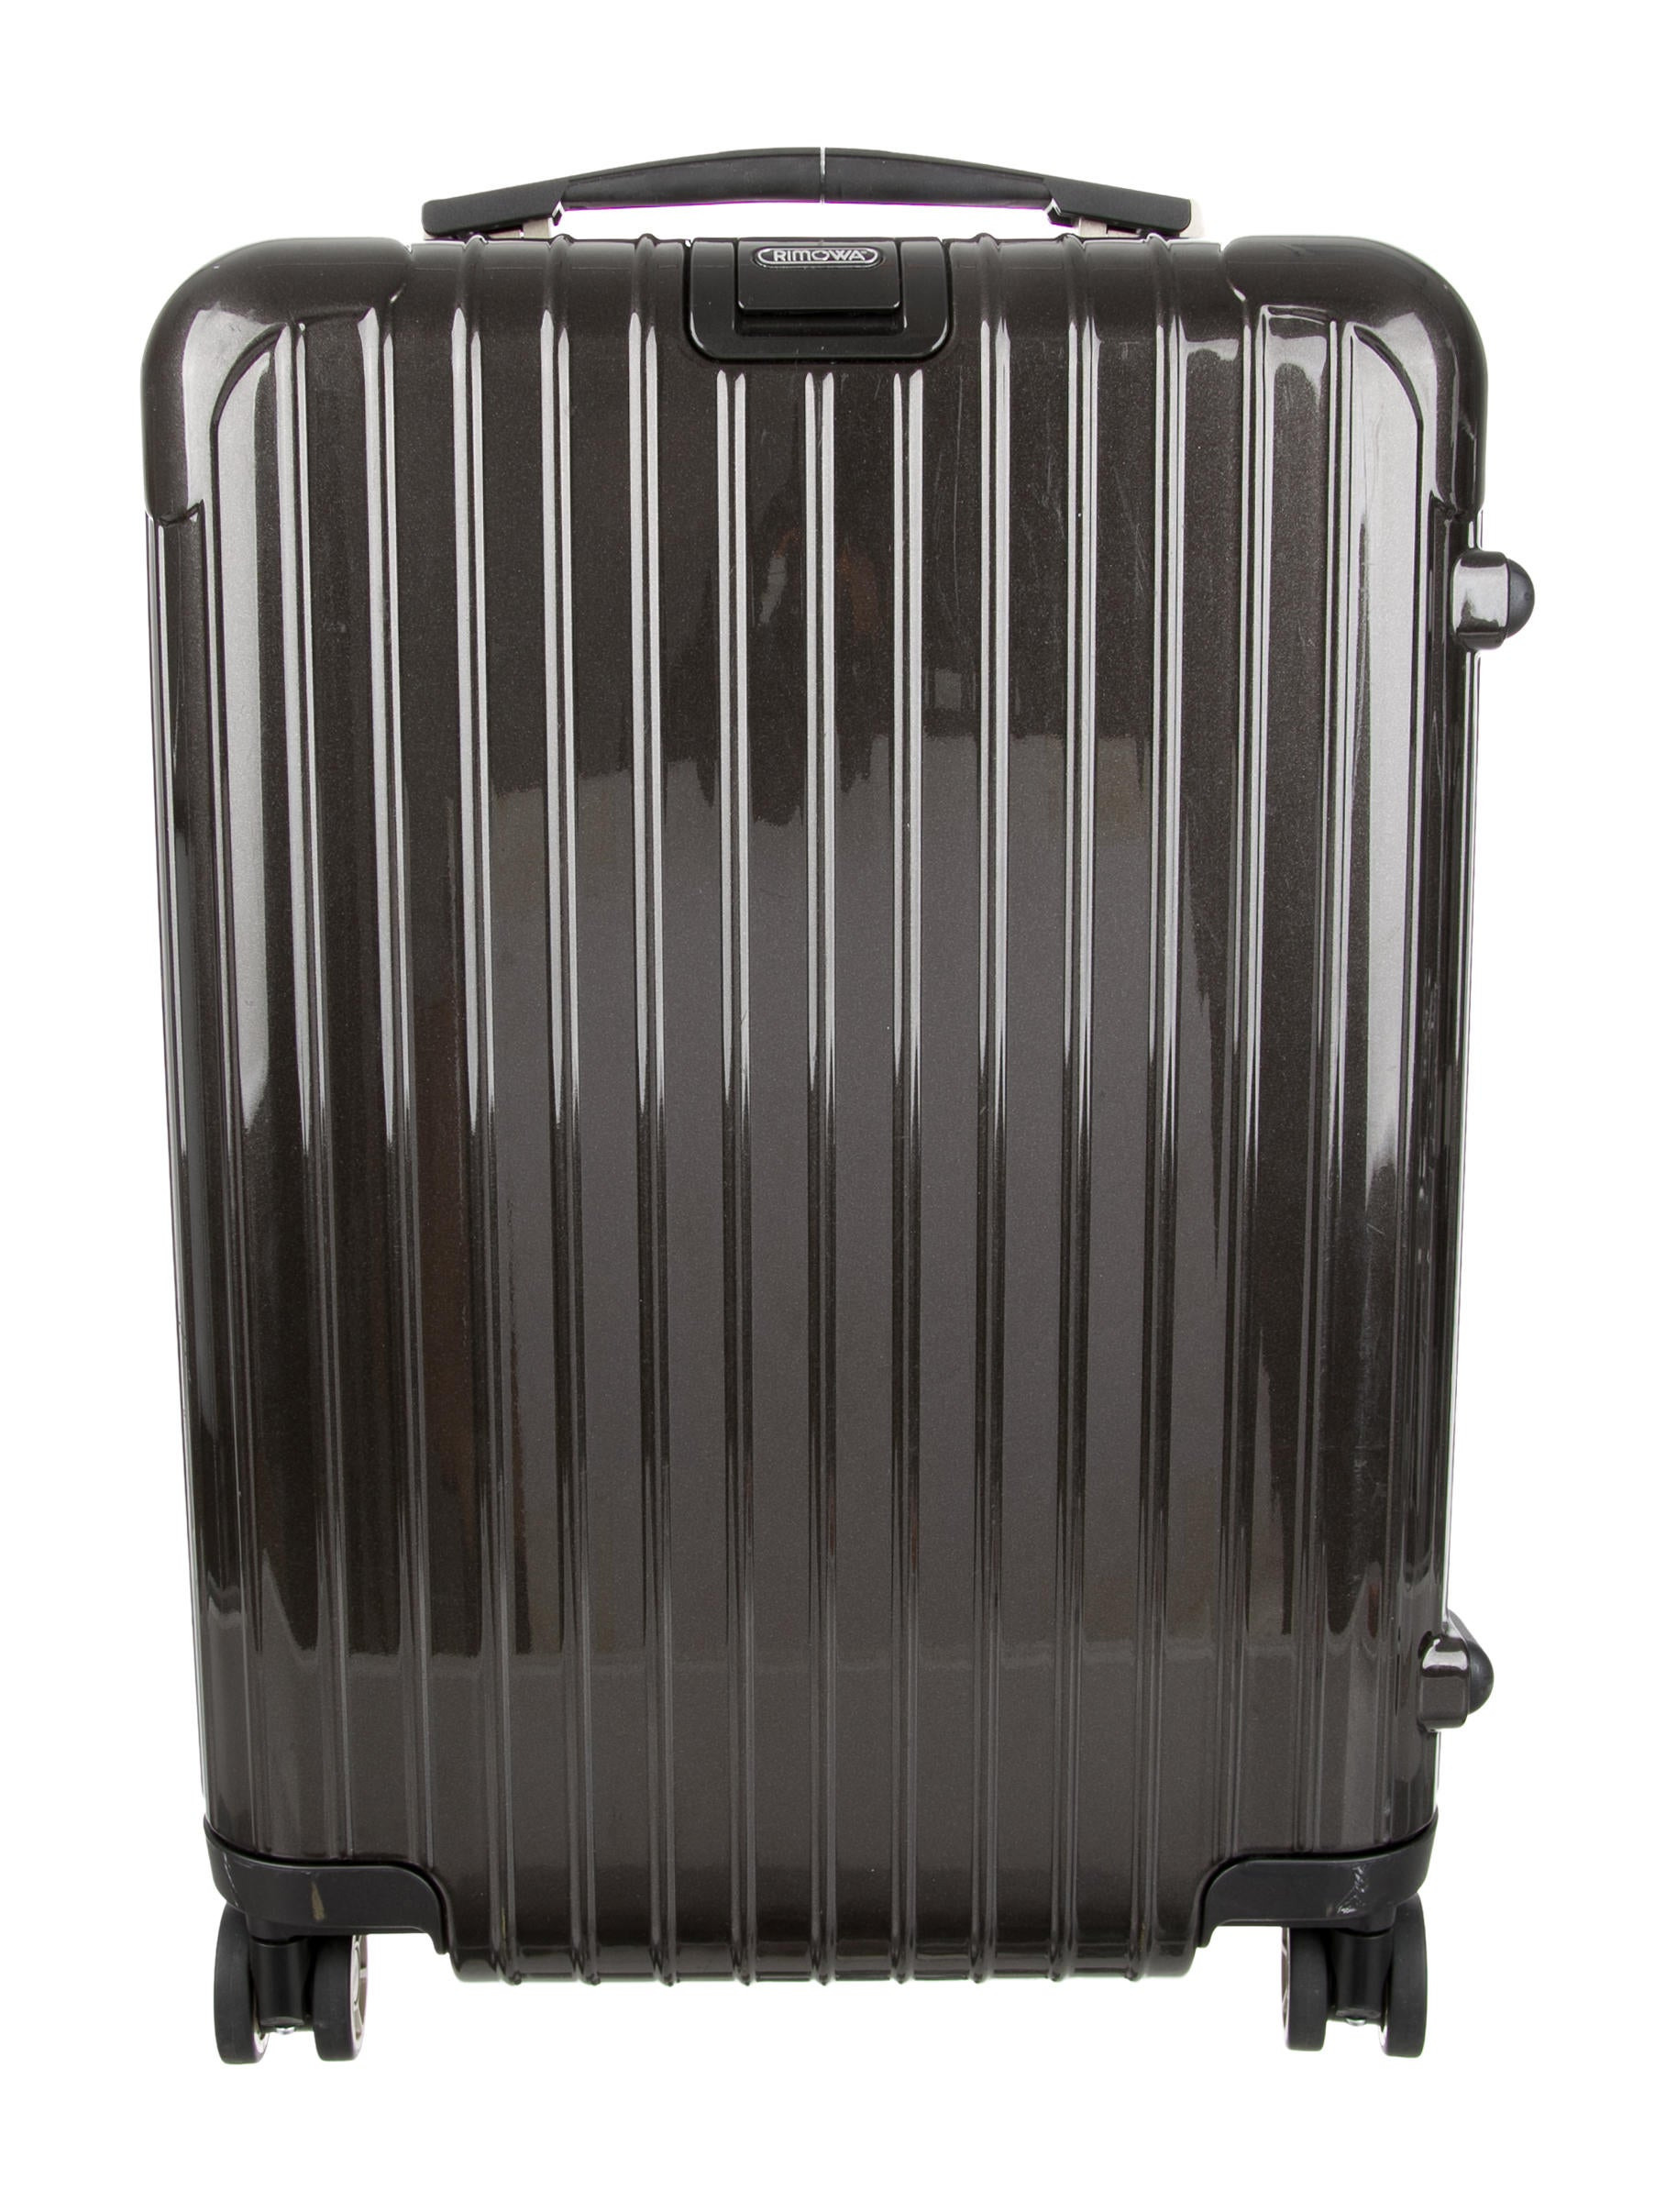 Rimowa Salsa Deluxe Cabin Multiwheel Suitcase Luggage